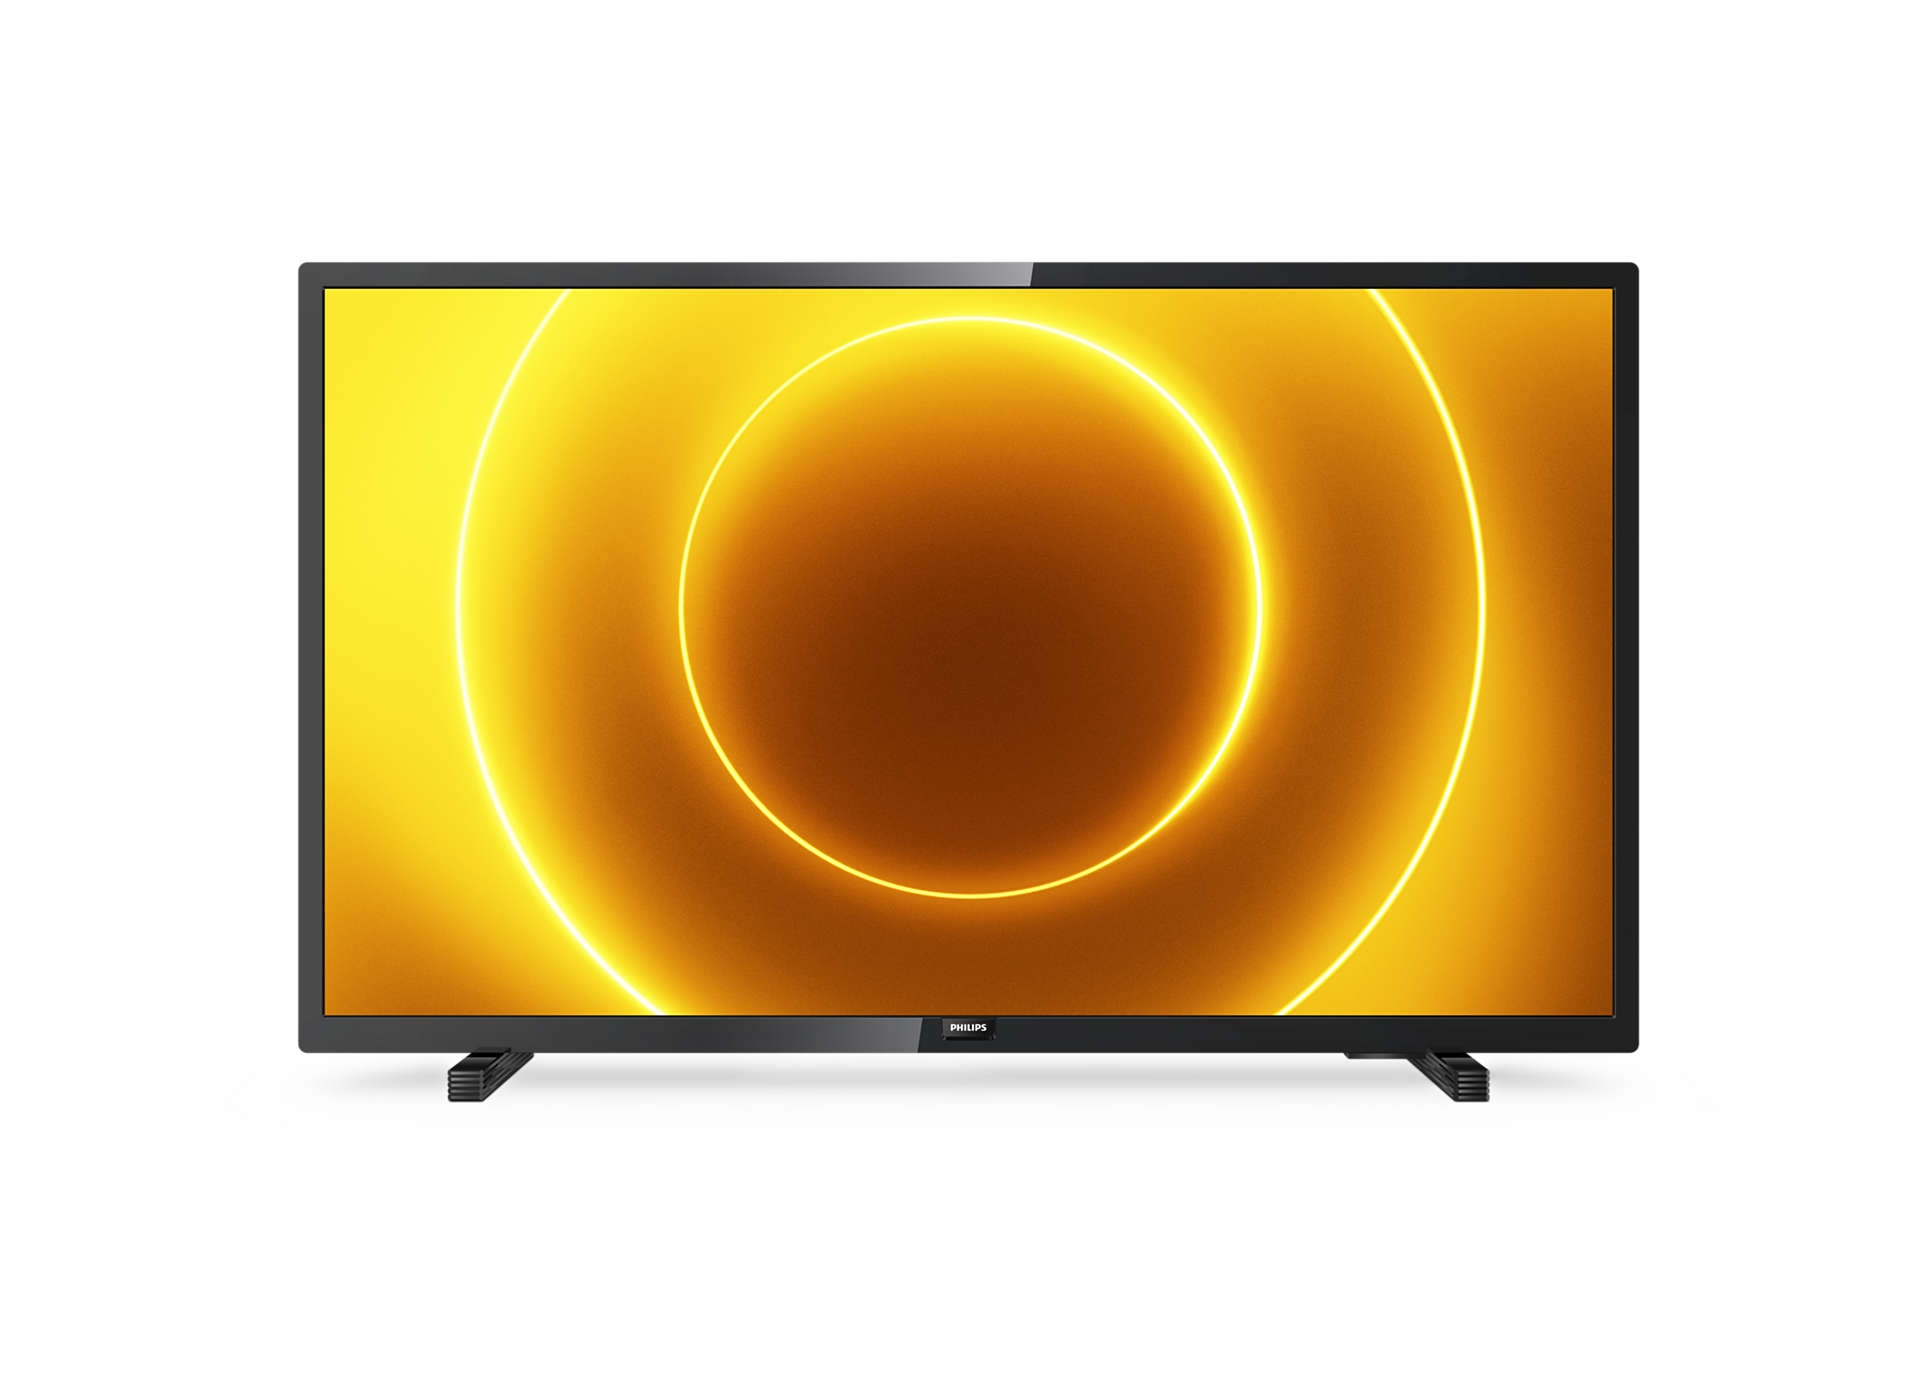 ЖК Телевизор Full HD Philips 43PFS5505 43 дюйма телевизор philips 43pfs5505 43 2020 черный